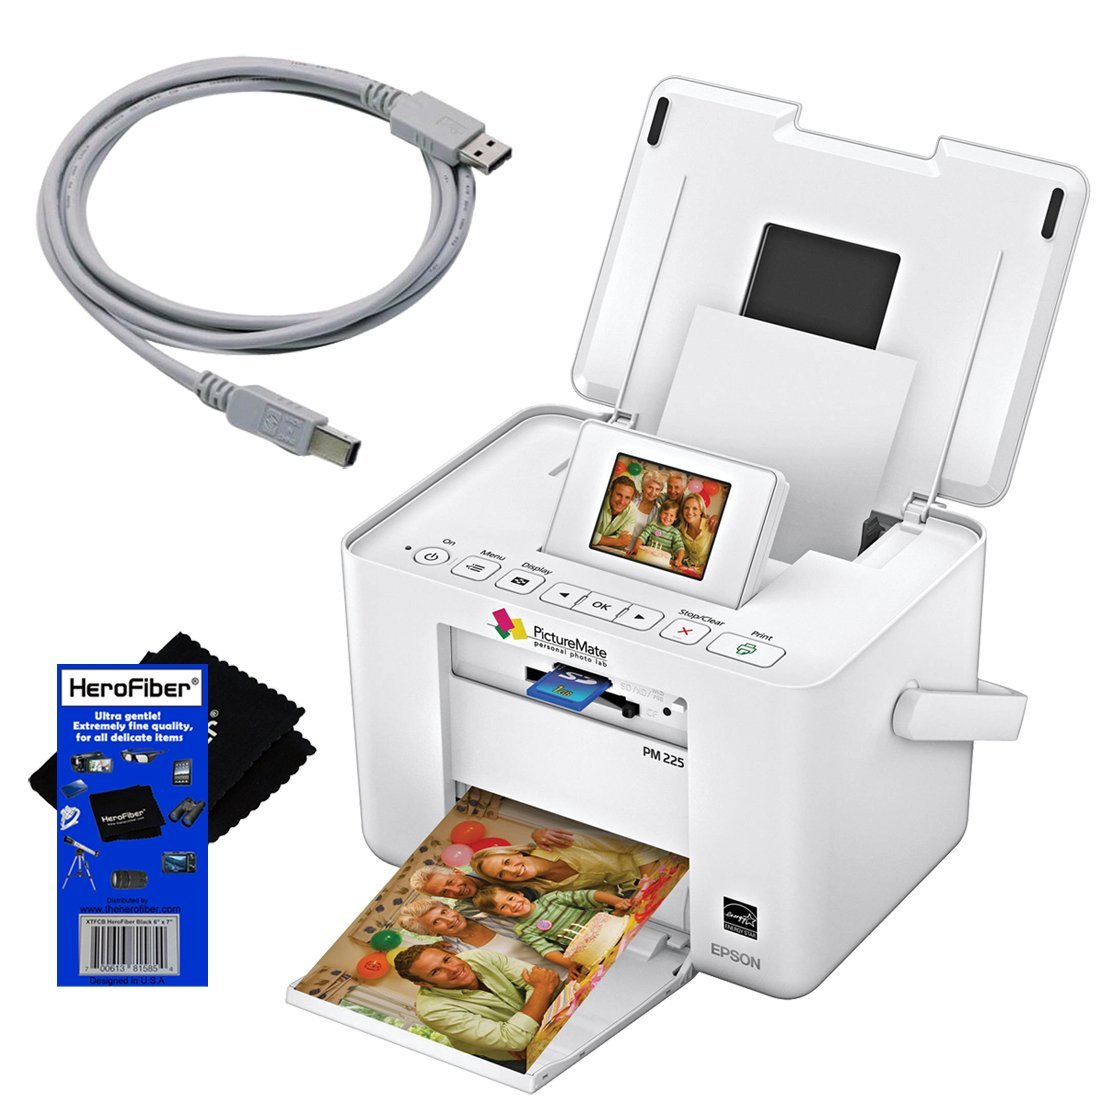 Cheap Epson Picturemate Photo Printer Find Epson Picturemate Photo